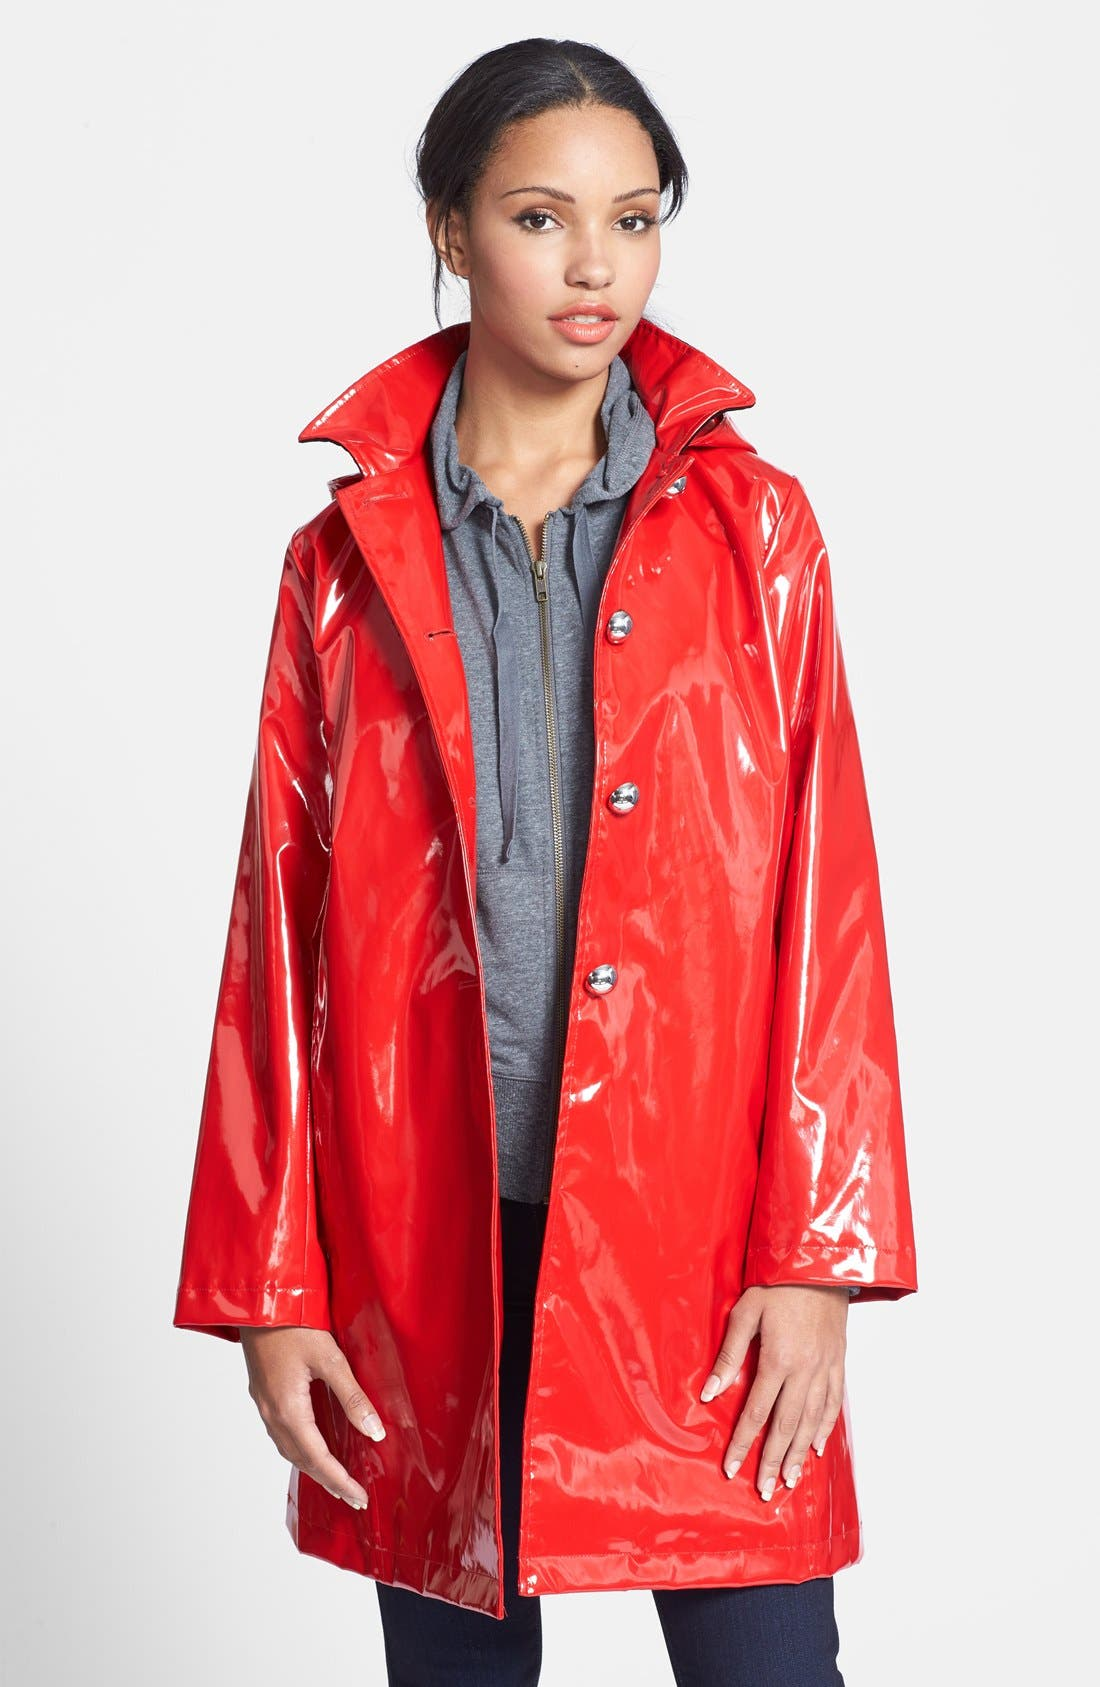 Alternate Image 1 Selected - Jane Post 'Princess' Rain Slicker with Detachable Hood